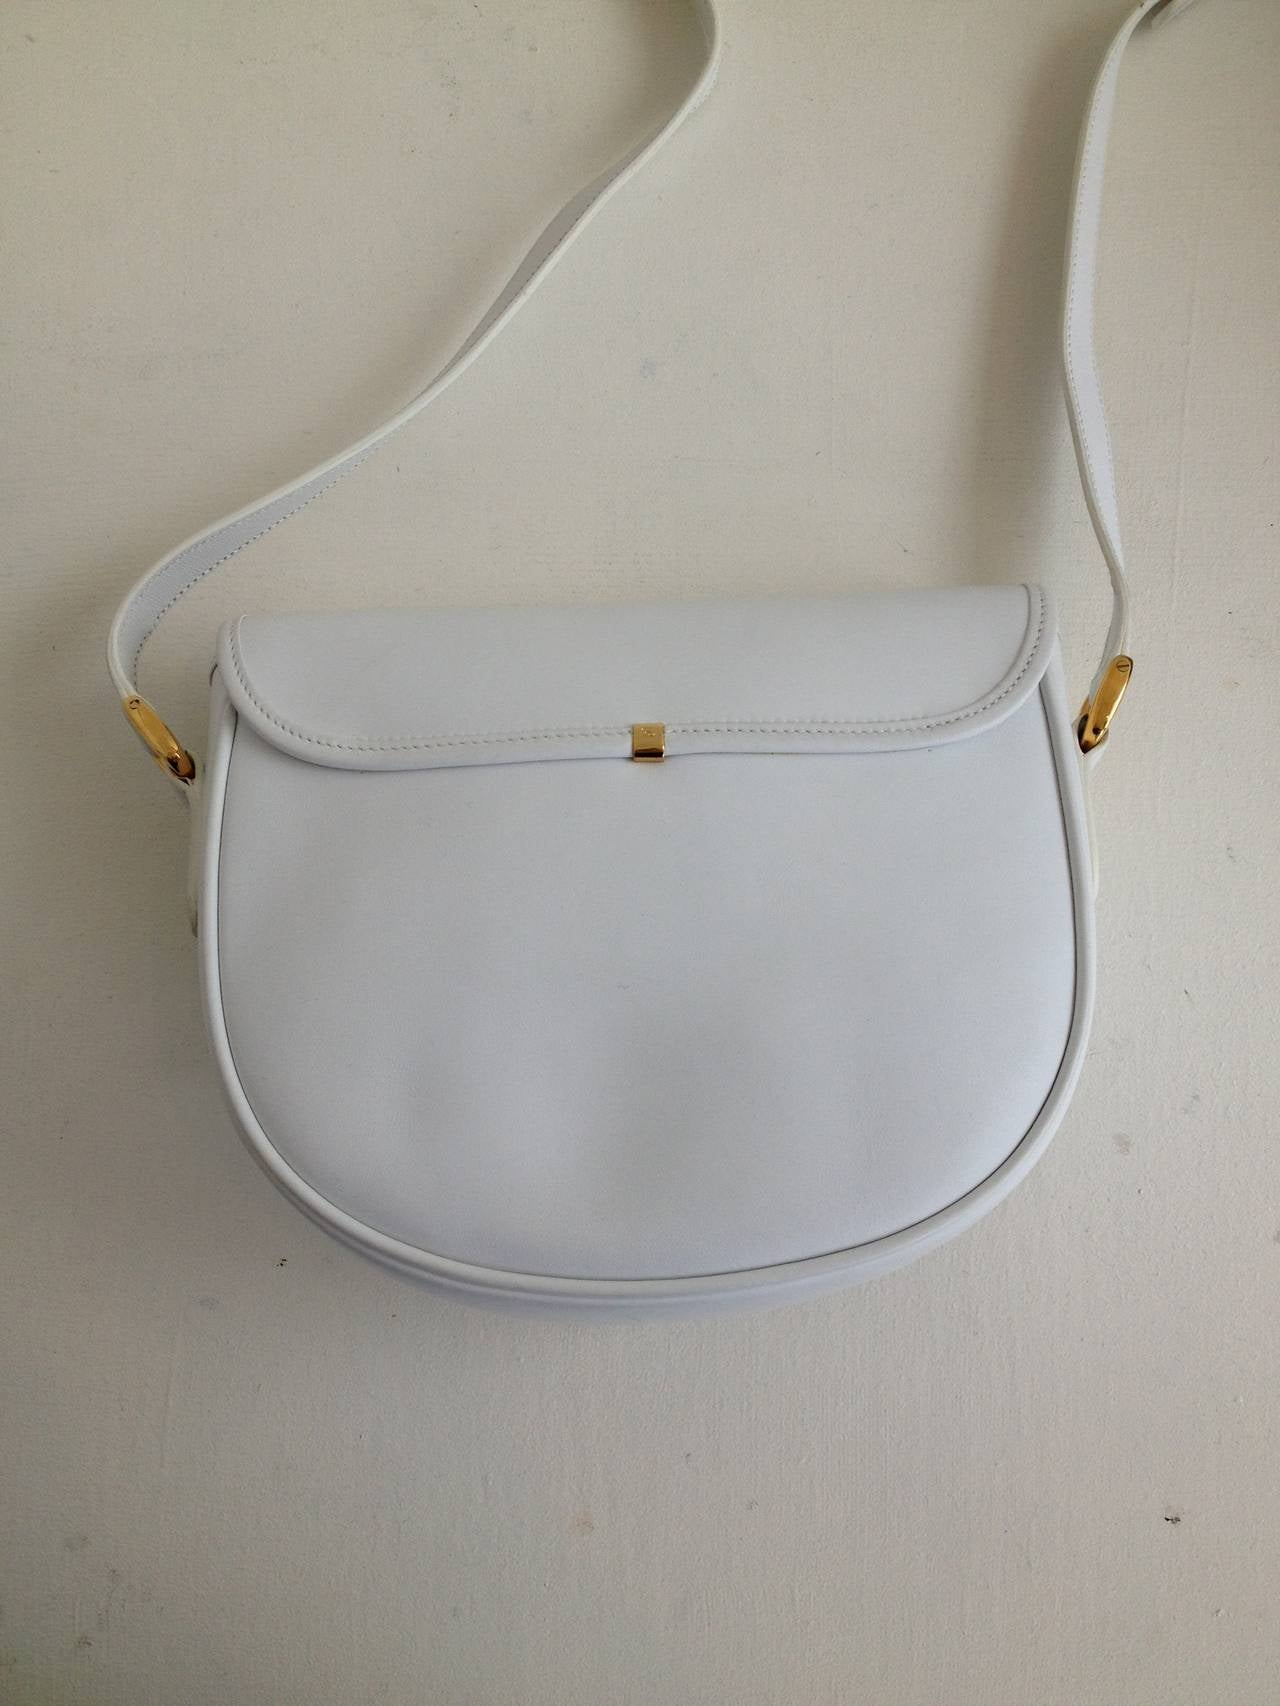 4e19f73ad50 Gray Gucci White Leather Vintage Crossbody Saddle Bag For Sale